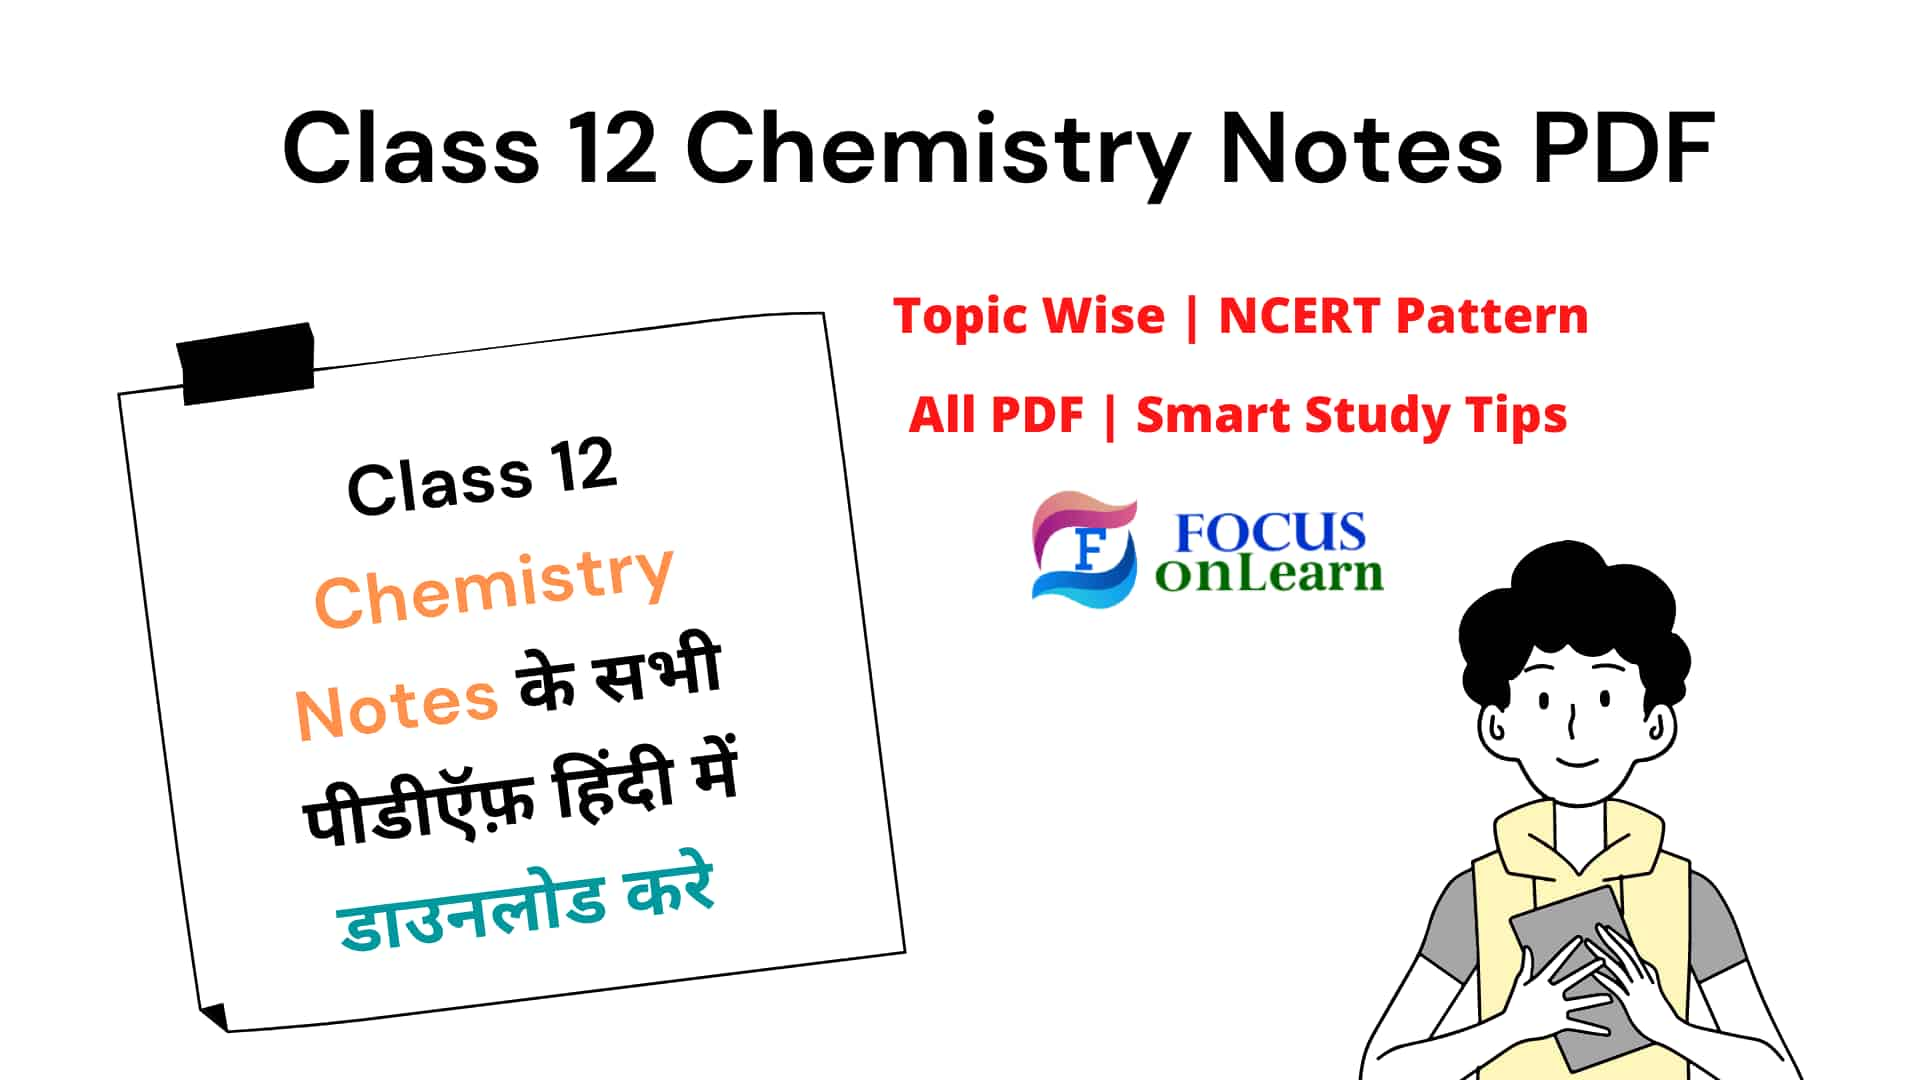 Class 12 Chemistry Notes PDF in Hindi